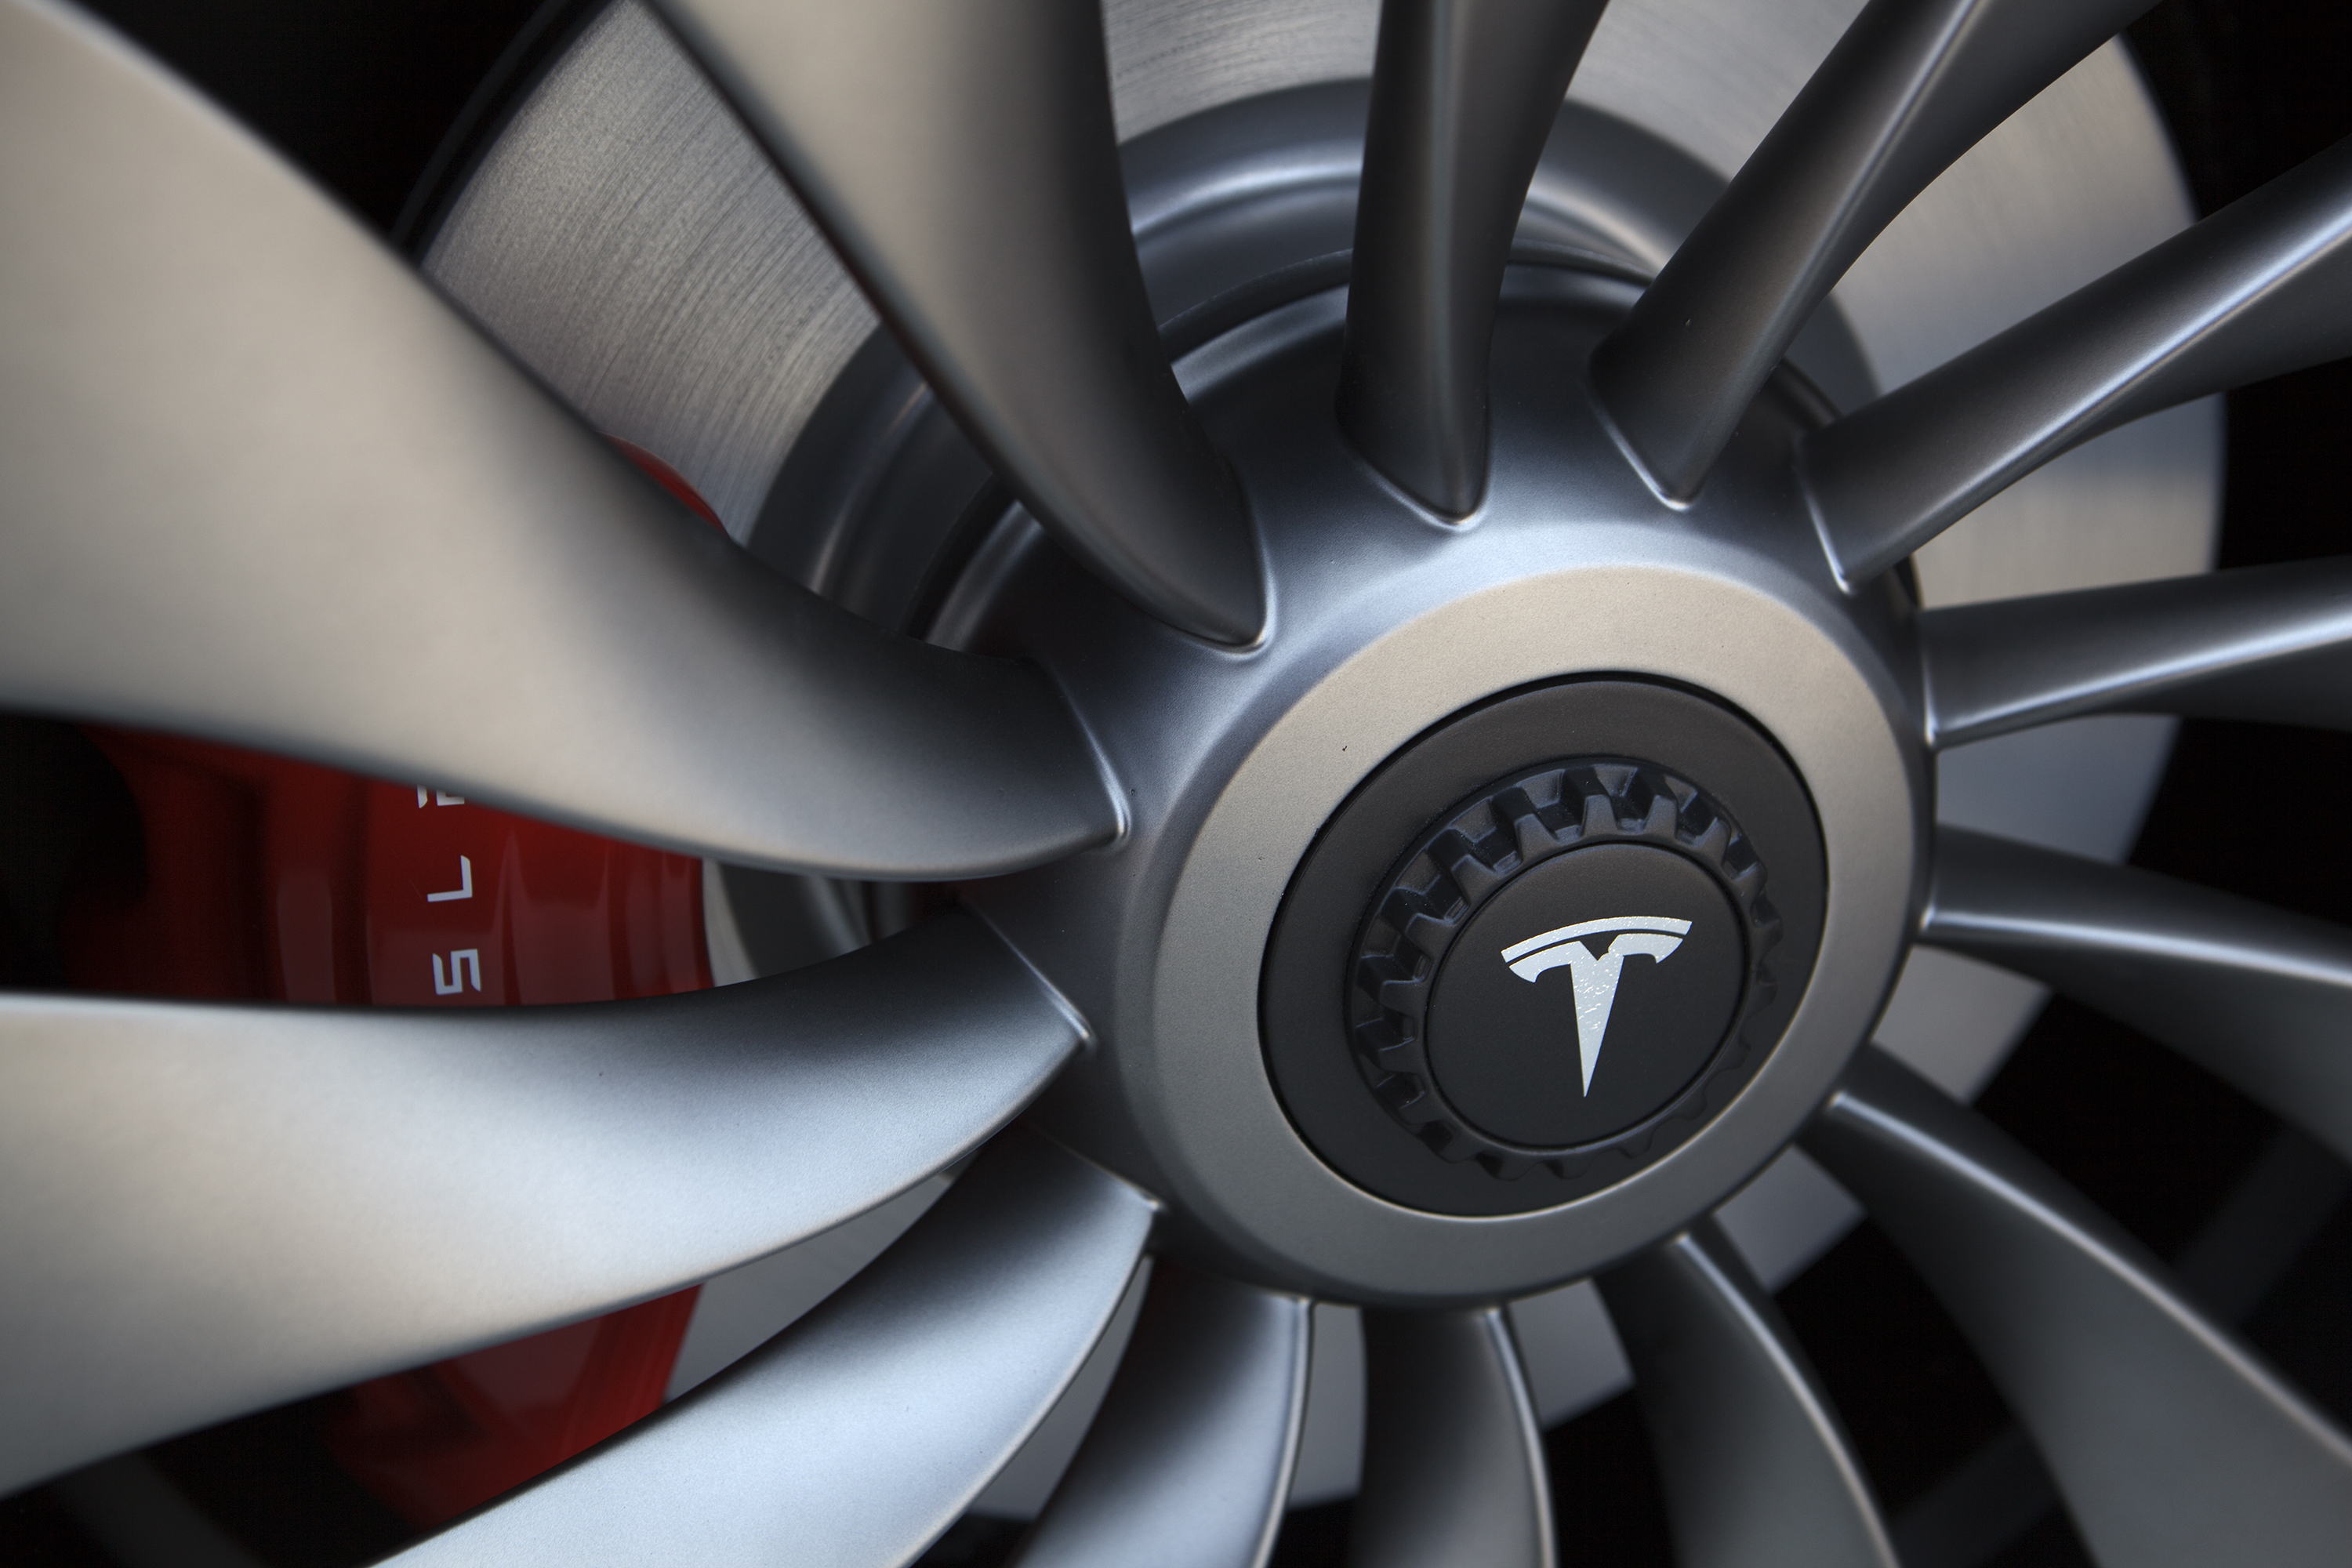 A Tesla Motor Inc. logo is displayed on the wheel of a Model 3 vehicle outside the company's Gigafactory in Sparks, Nevada, U.S., on Tuesday, July 26, 2016.